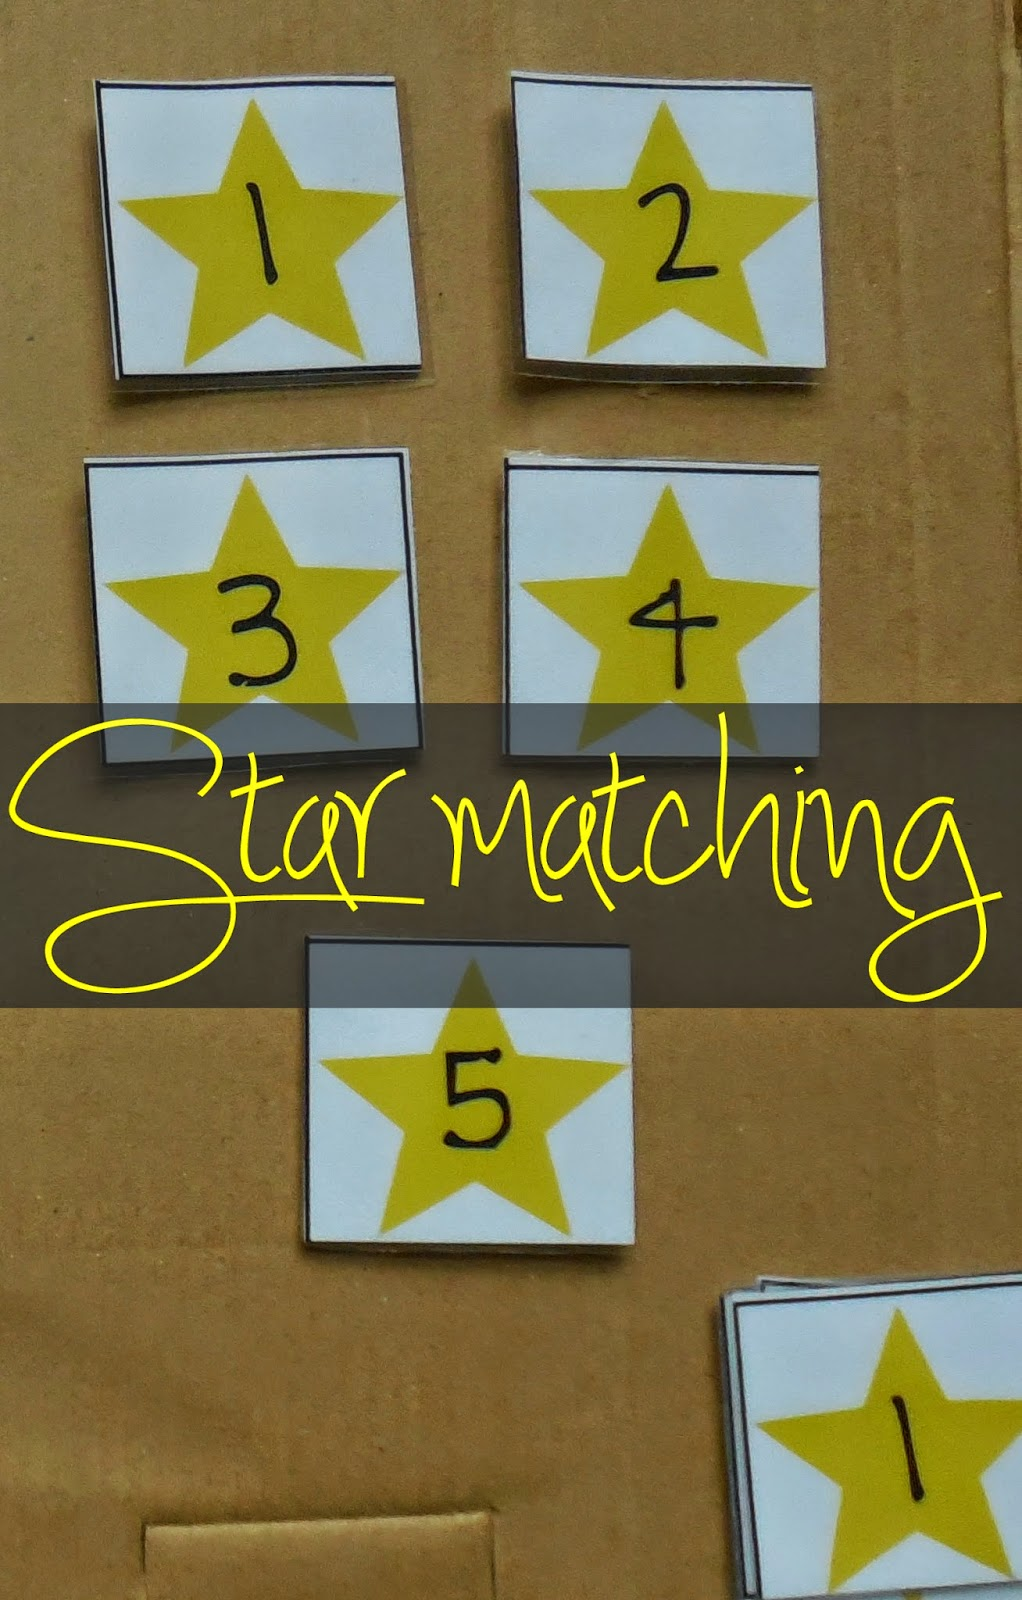 Star Bmatching on beginning sounds activities